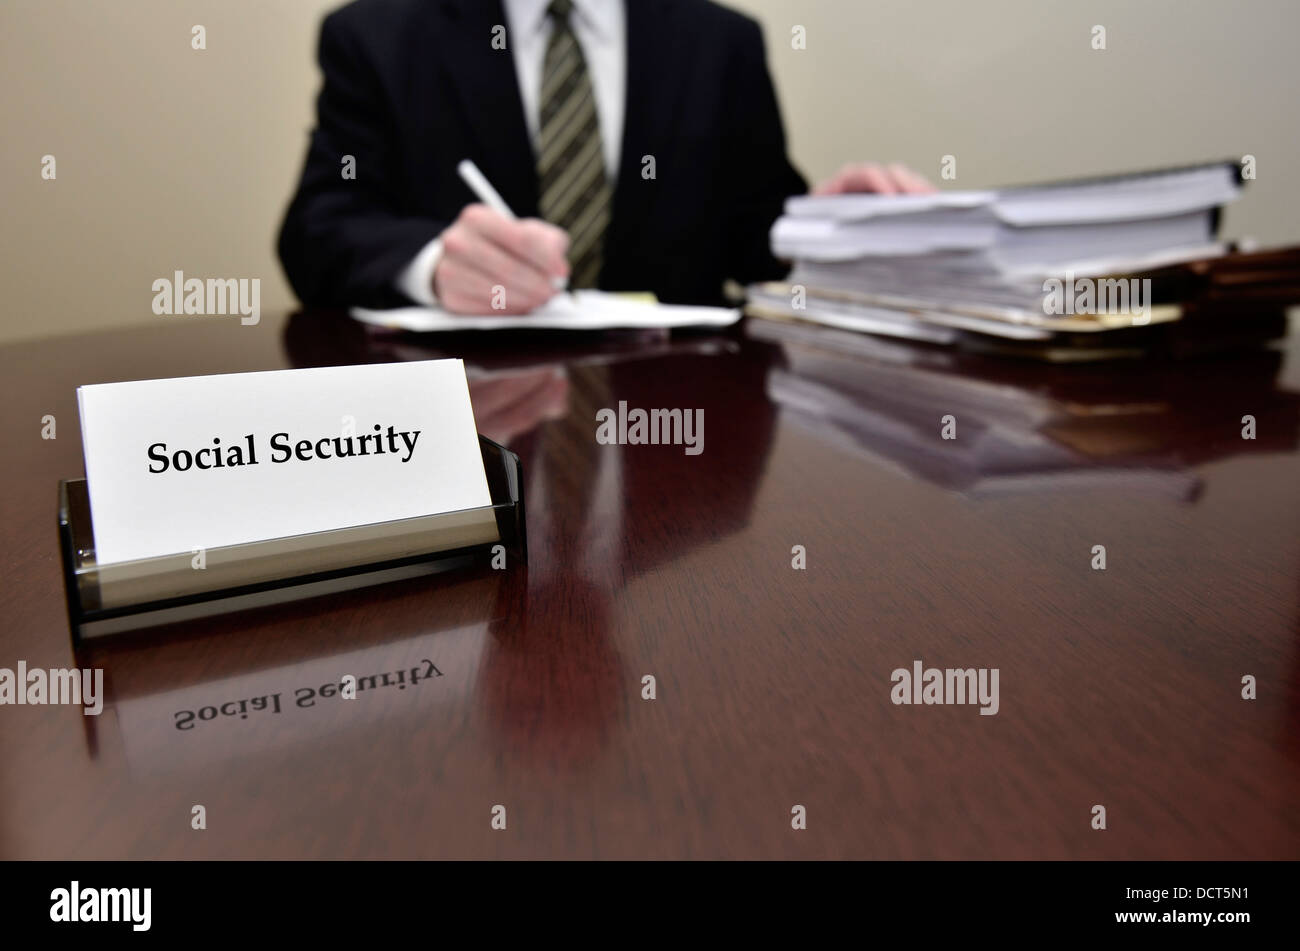 Man sitting at desk holding pen papers with business card for Social ...